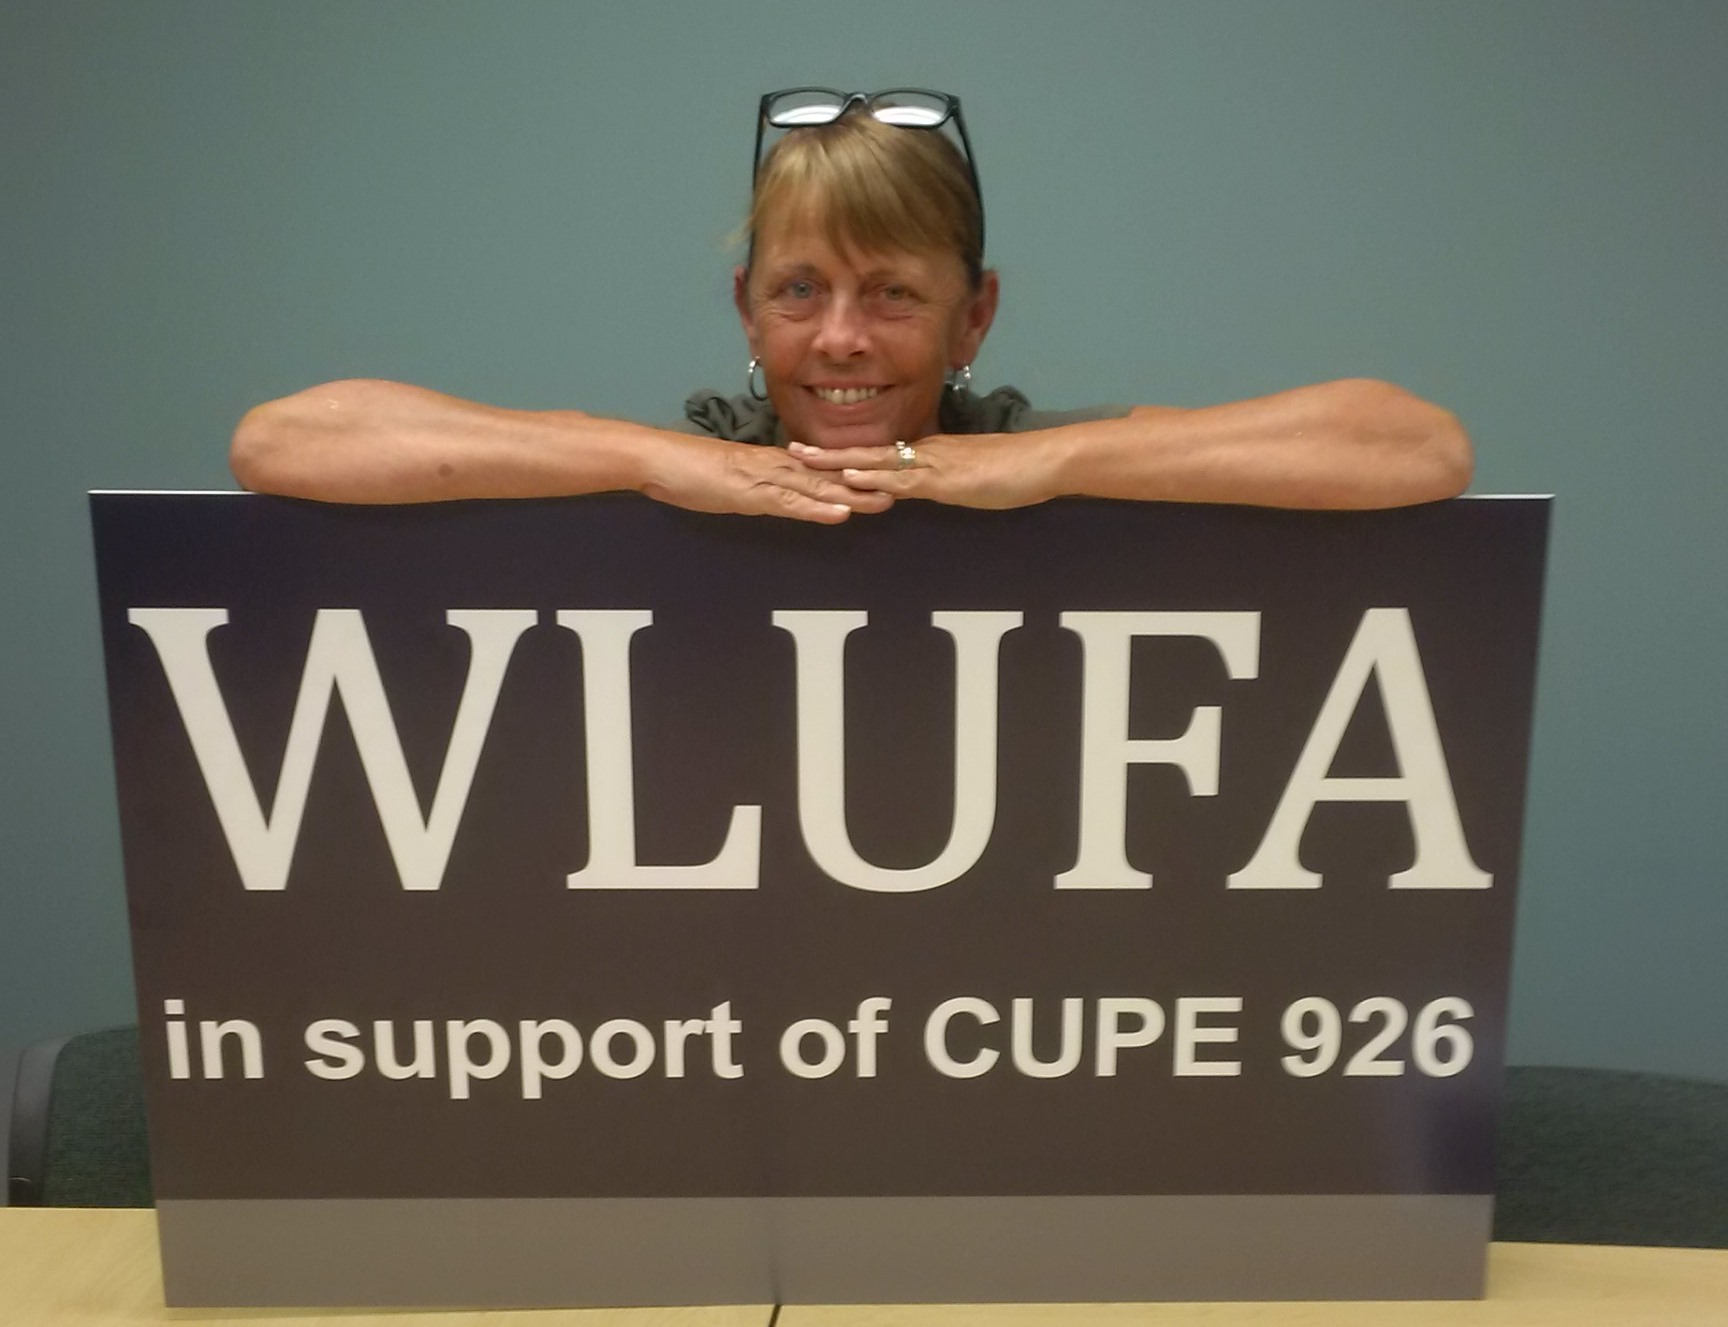 WLUFA in support of CUPE 926